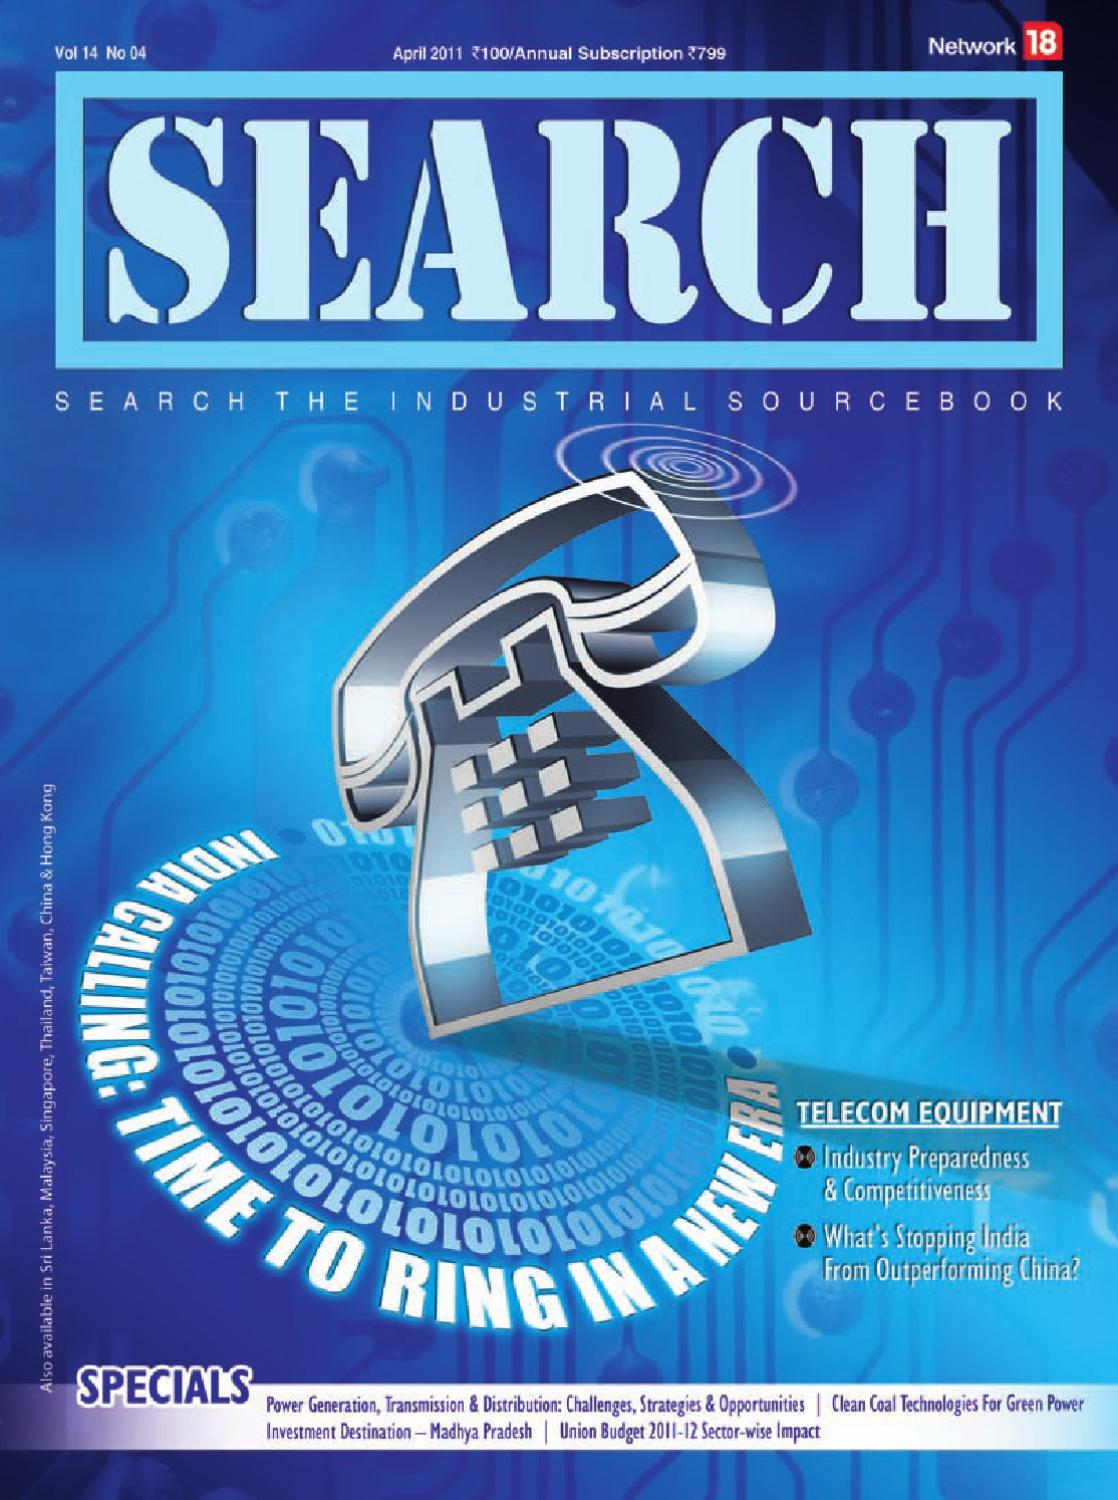 Search - April 2011 by Infomedia18 - issuu